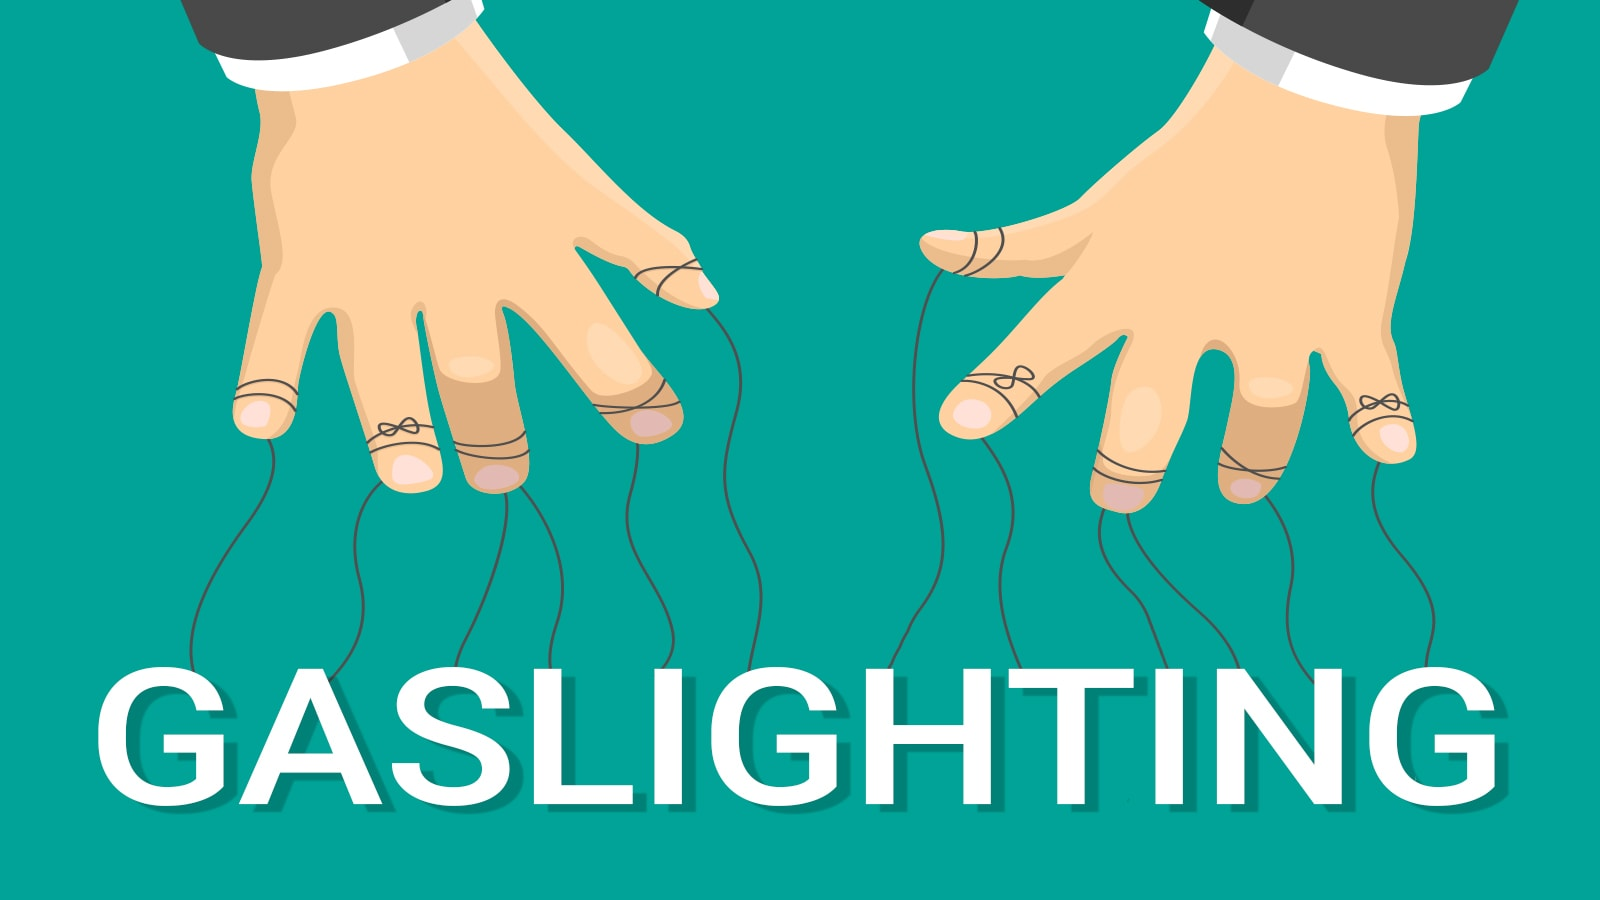 10 Warning Signs Of Gaslighting To Never Ignore